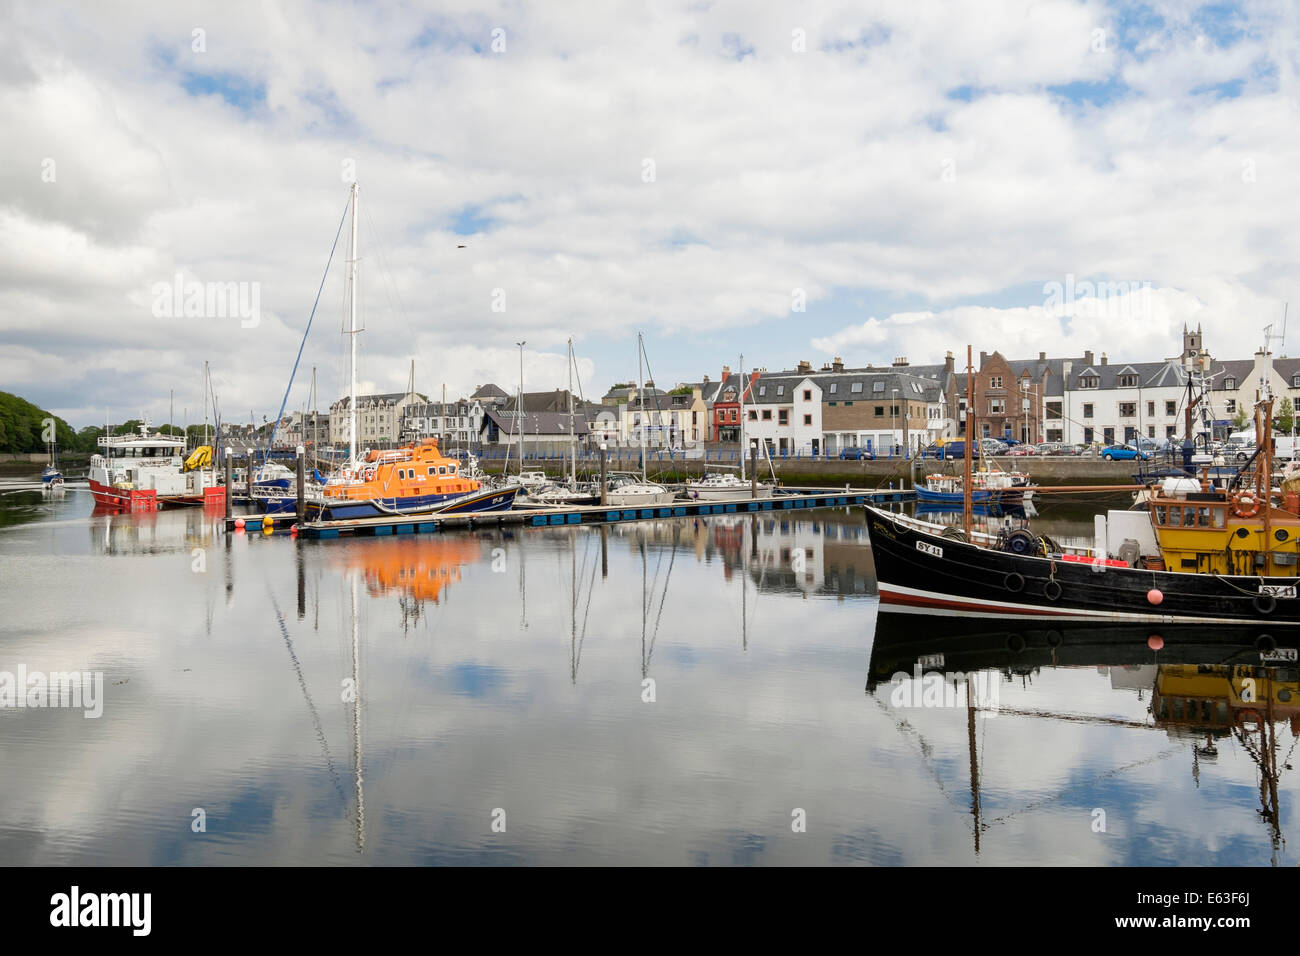 Moored boats reflected in calm water in the inner harbour. Stornoway, Isle of Lewis, Outer Hebrides, Western Isles, - Stock Image